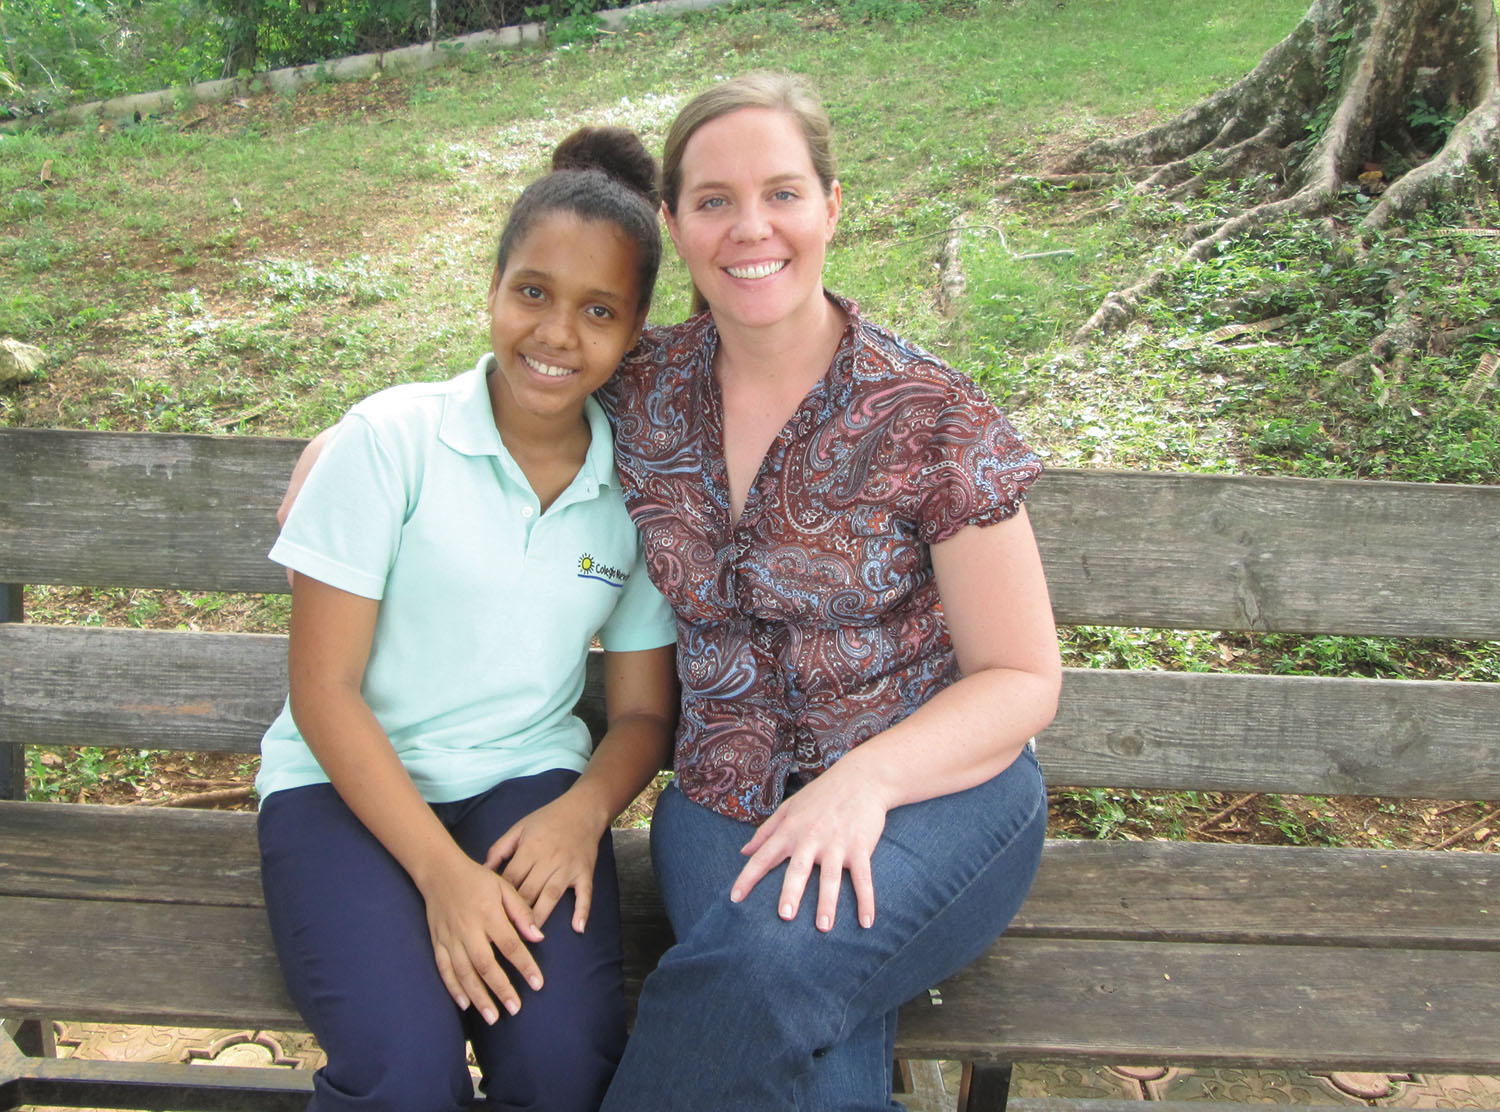 Heather Williams, our field manager in the DR, enjoyed time with Esmeralda, who is sponsored by Heather's mother.